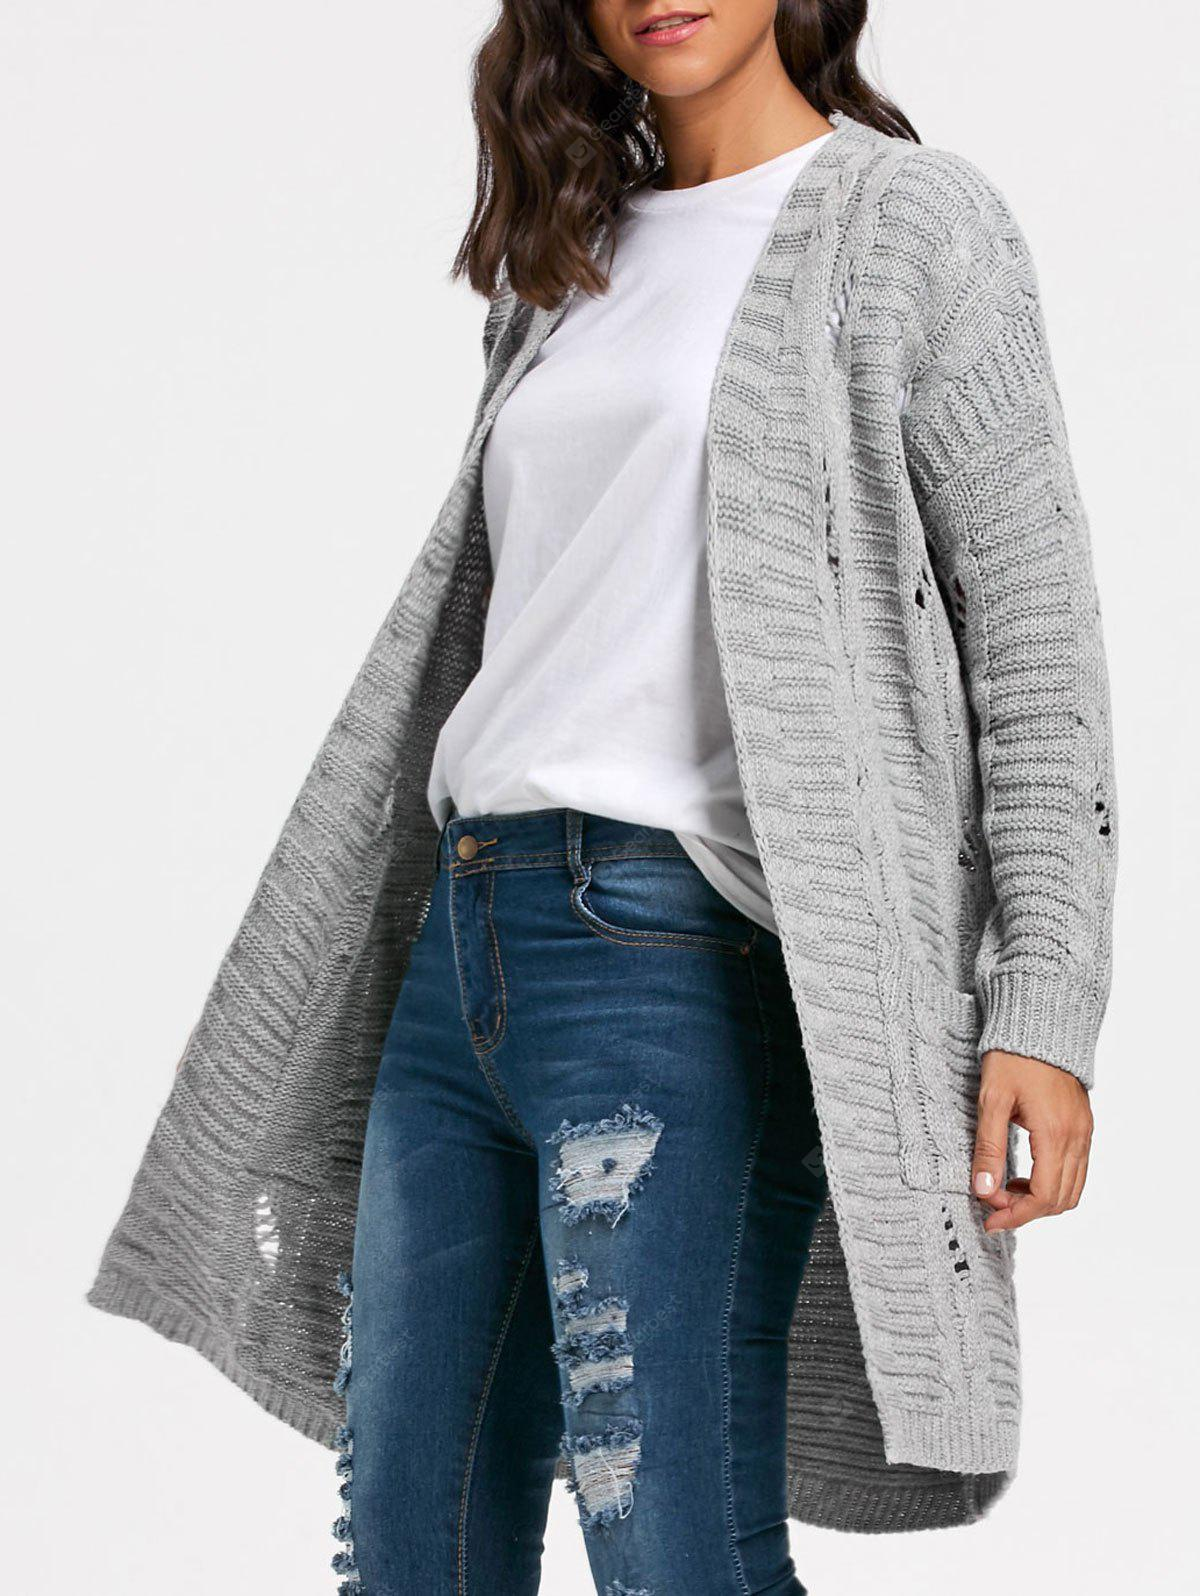 Long Cable Kint Sweater Cardigan